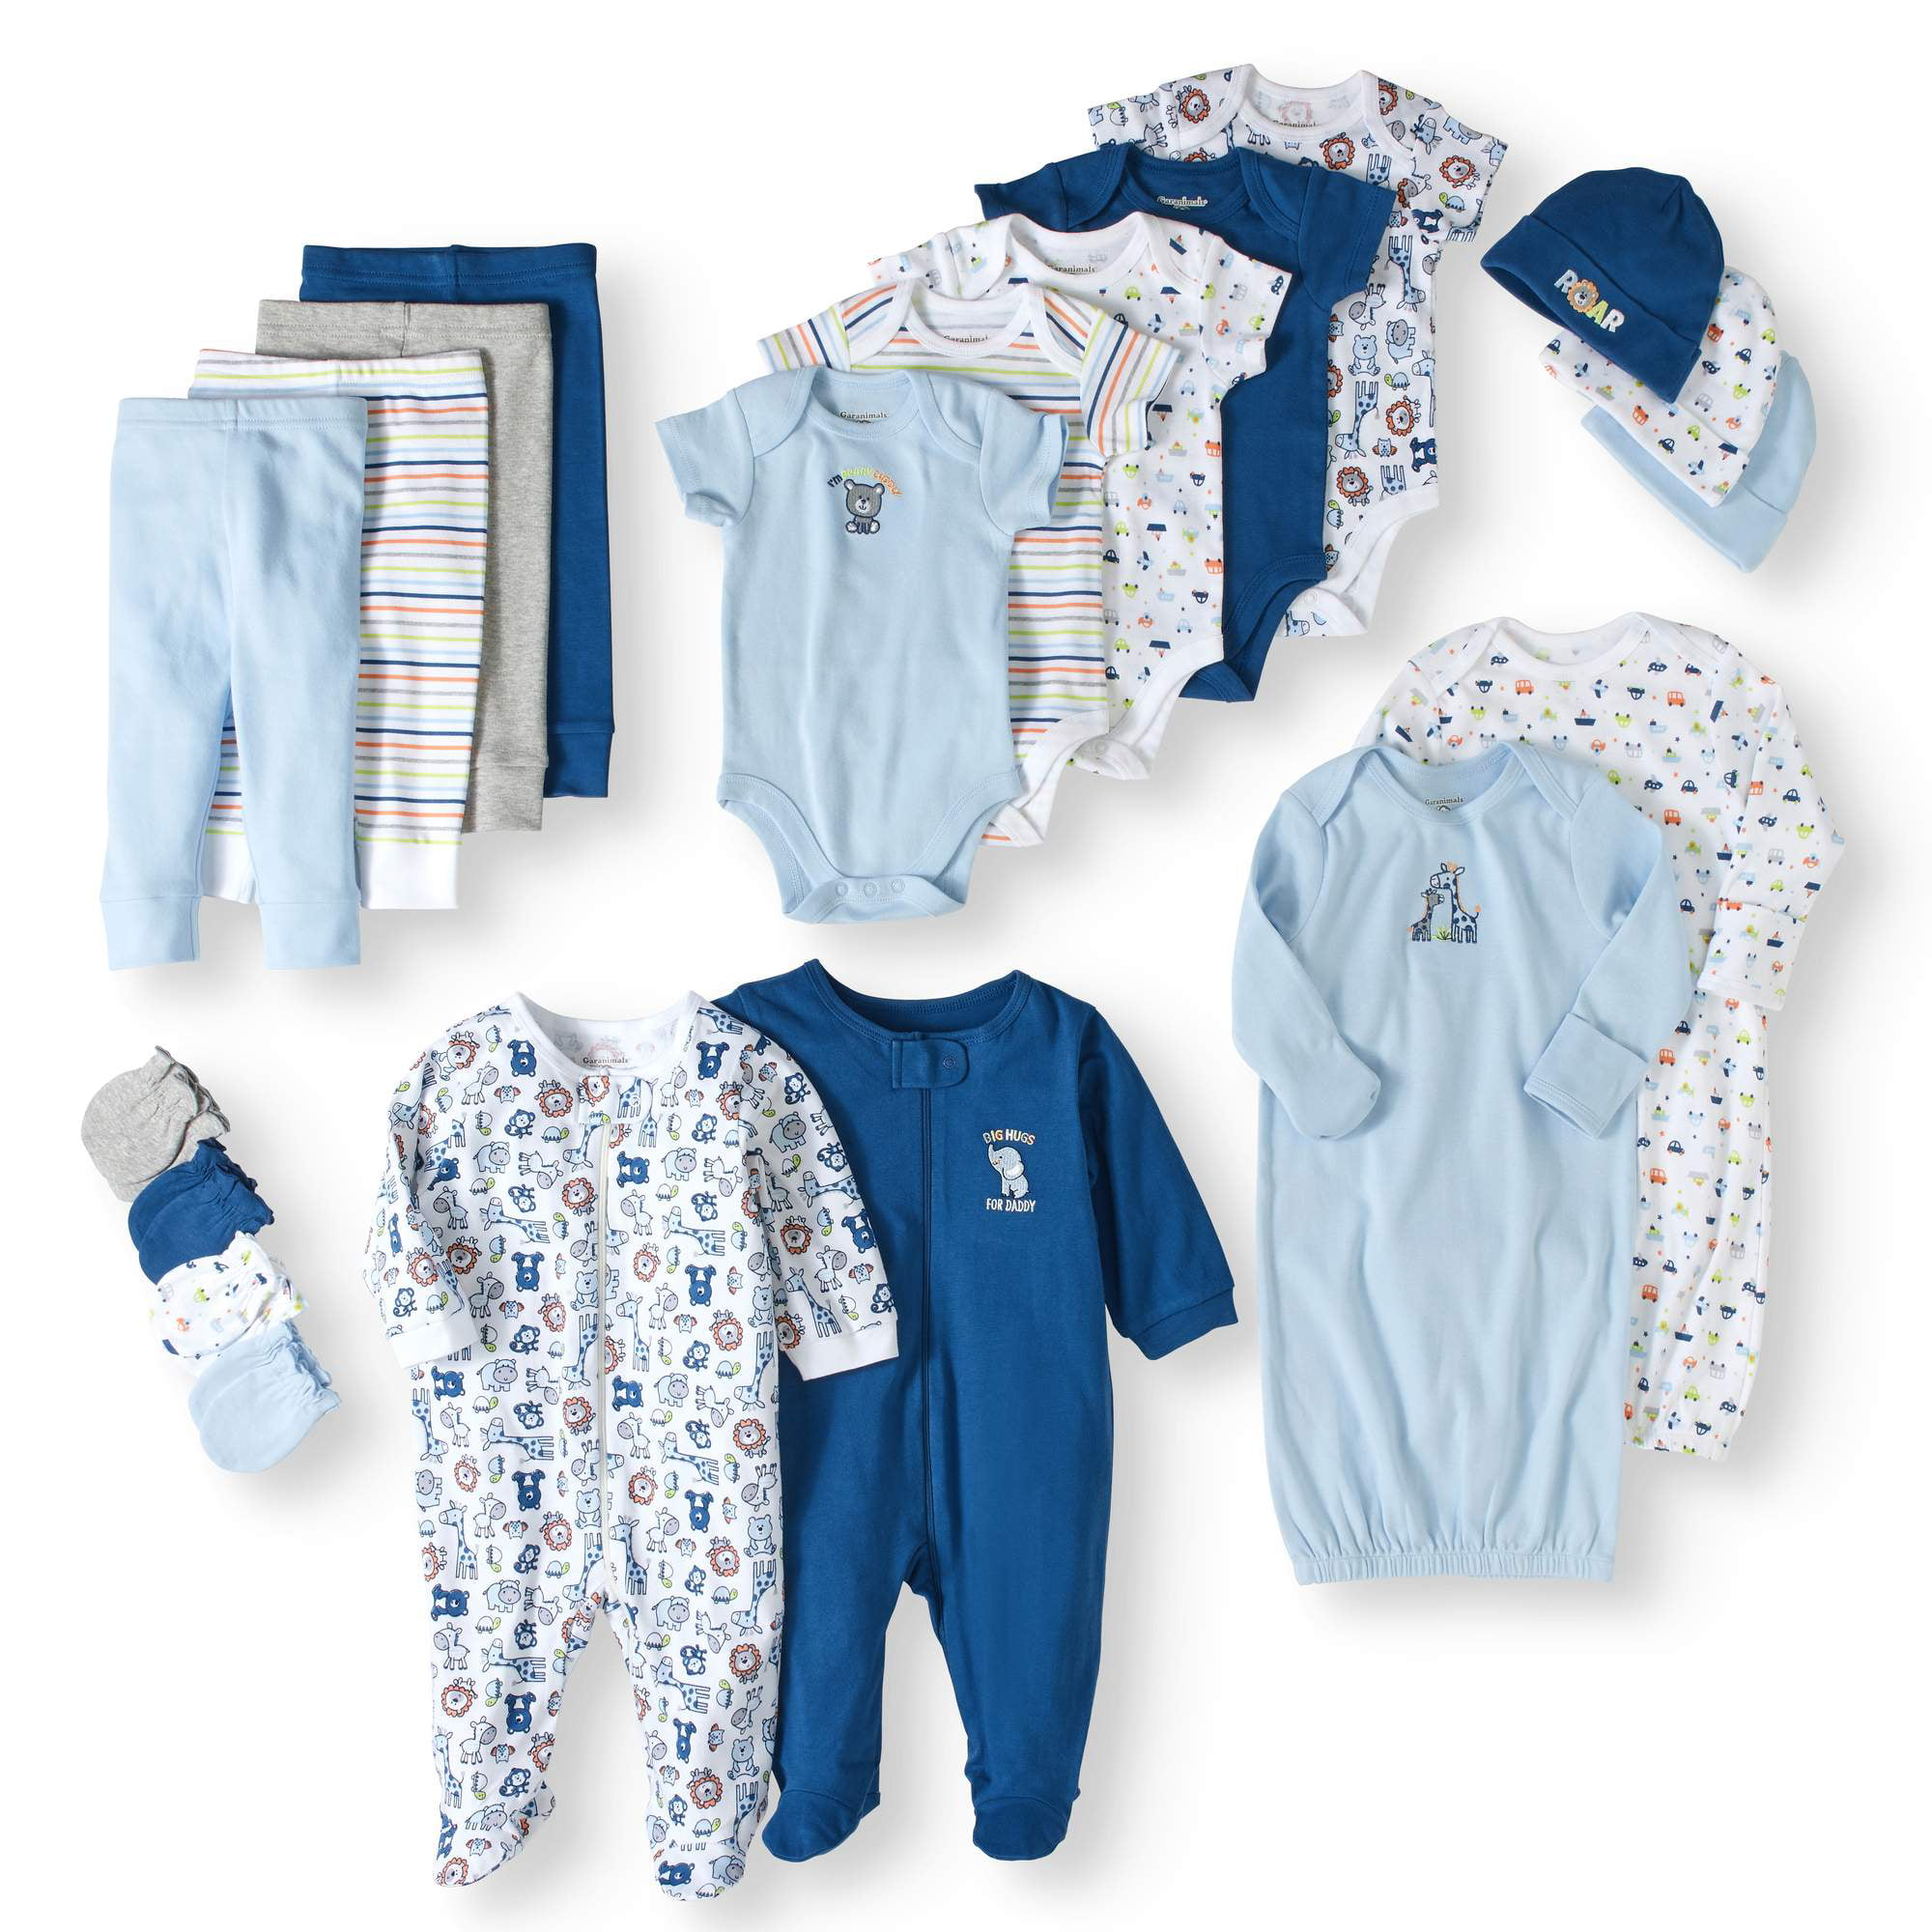 Click here to buy Garanimals Newborn Baby Boy 20 Piece Layette Baby Shower Gift Set.